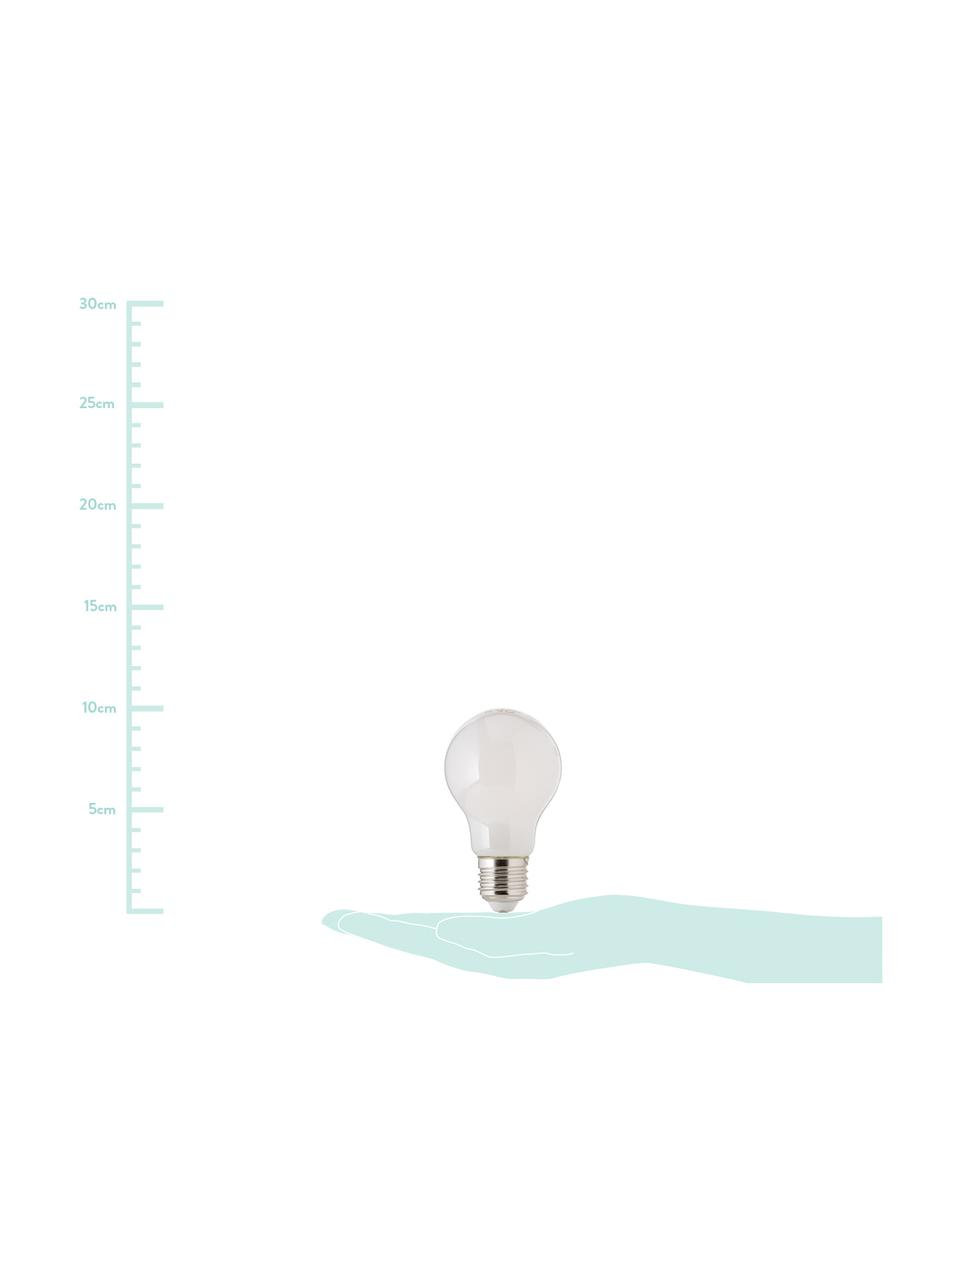 Ampoule LED E27 à intensité variable, 8 W, 1 pièce, Blanc